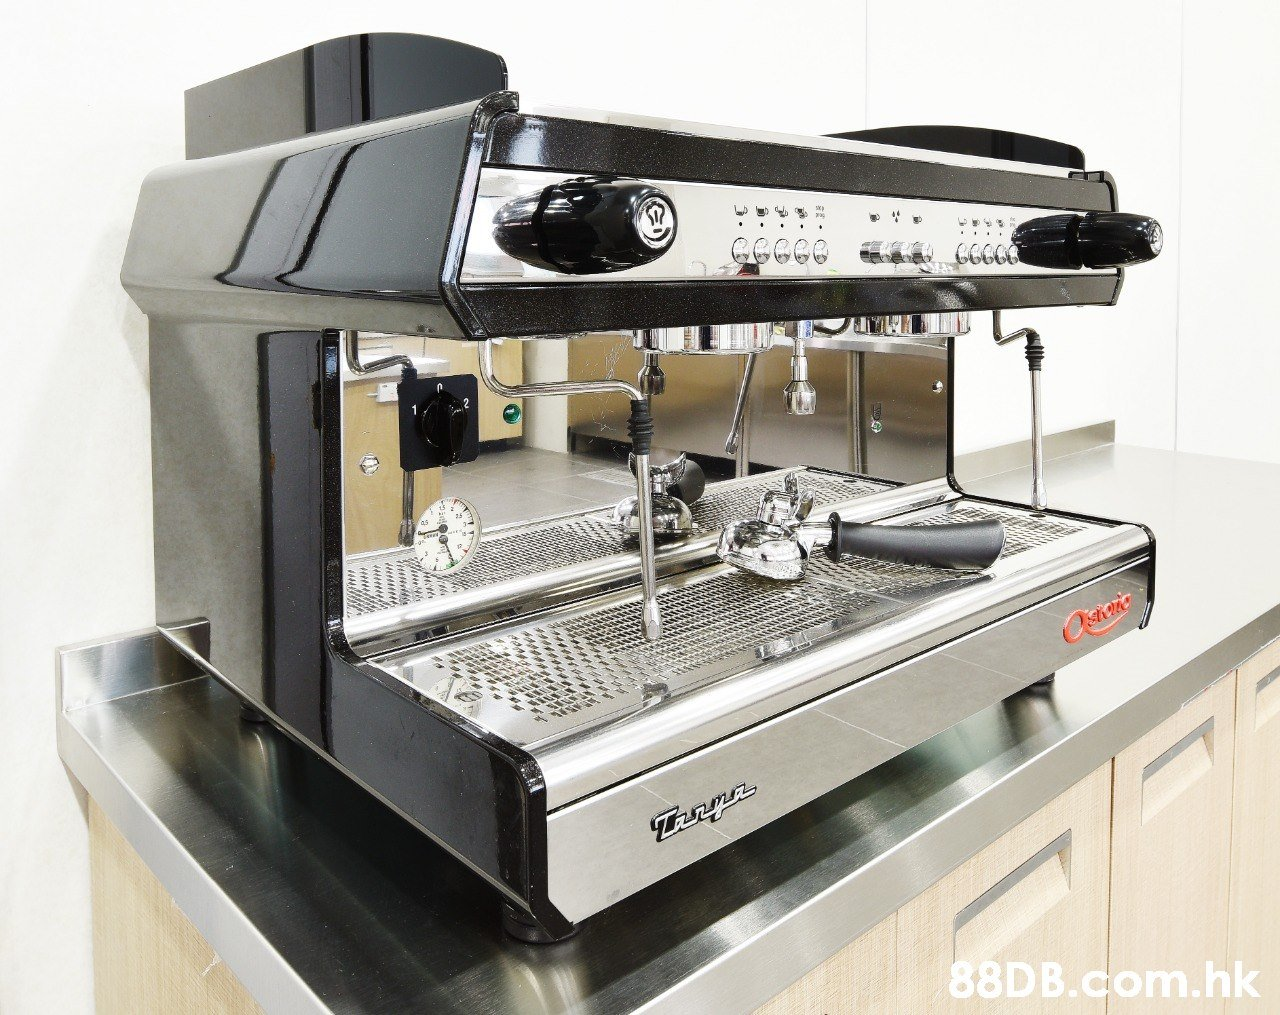 66608 Oshone Tunyn .hk  Espresso machine,Small appliance,Home appliance,Kitchen appliance,Coffeemaker